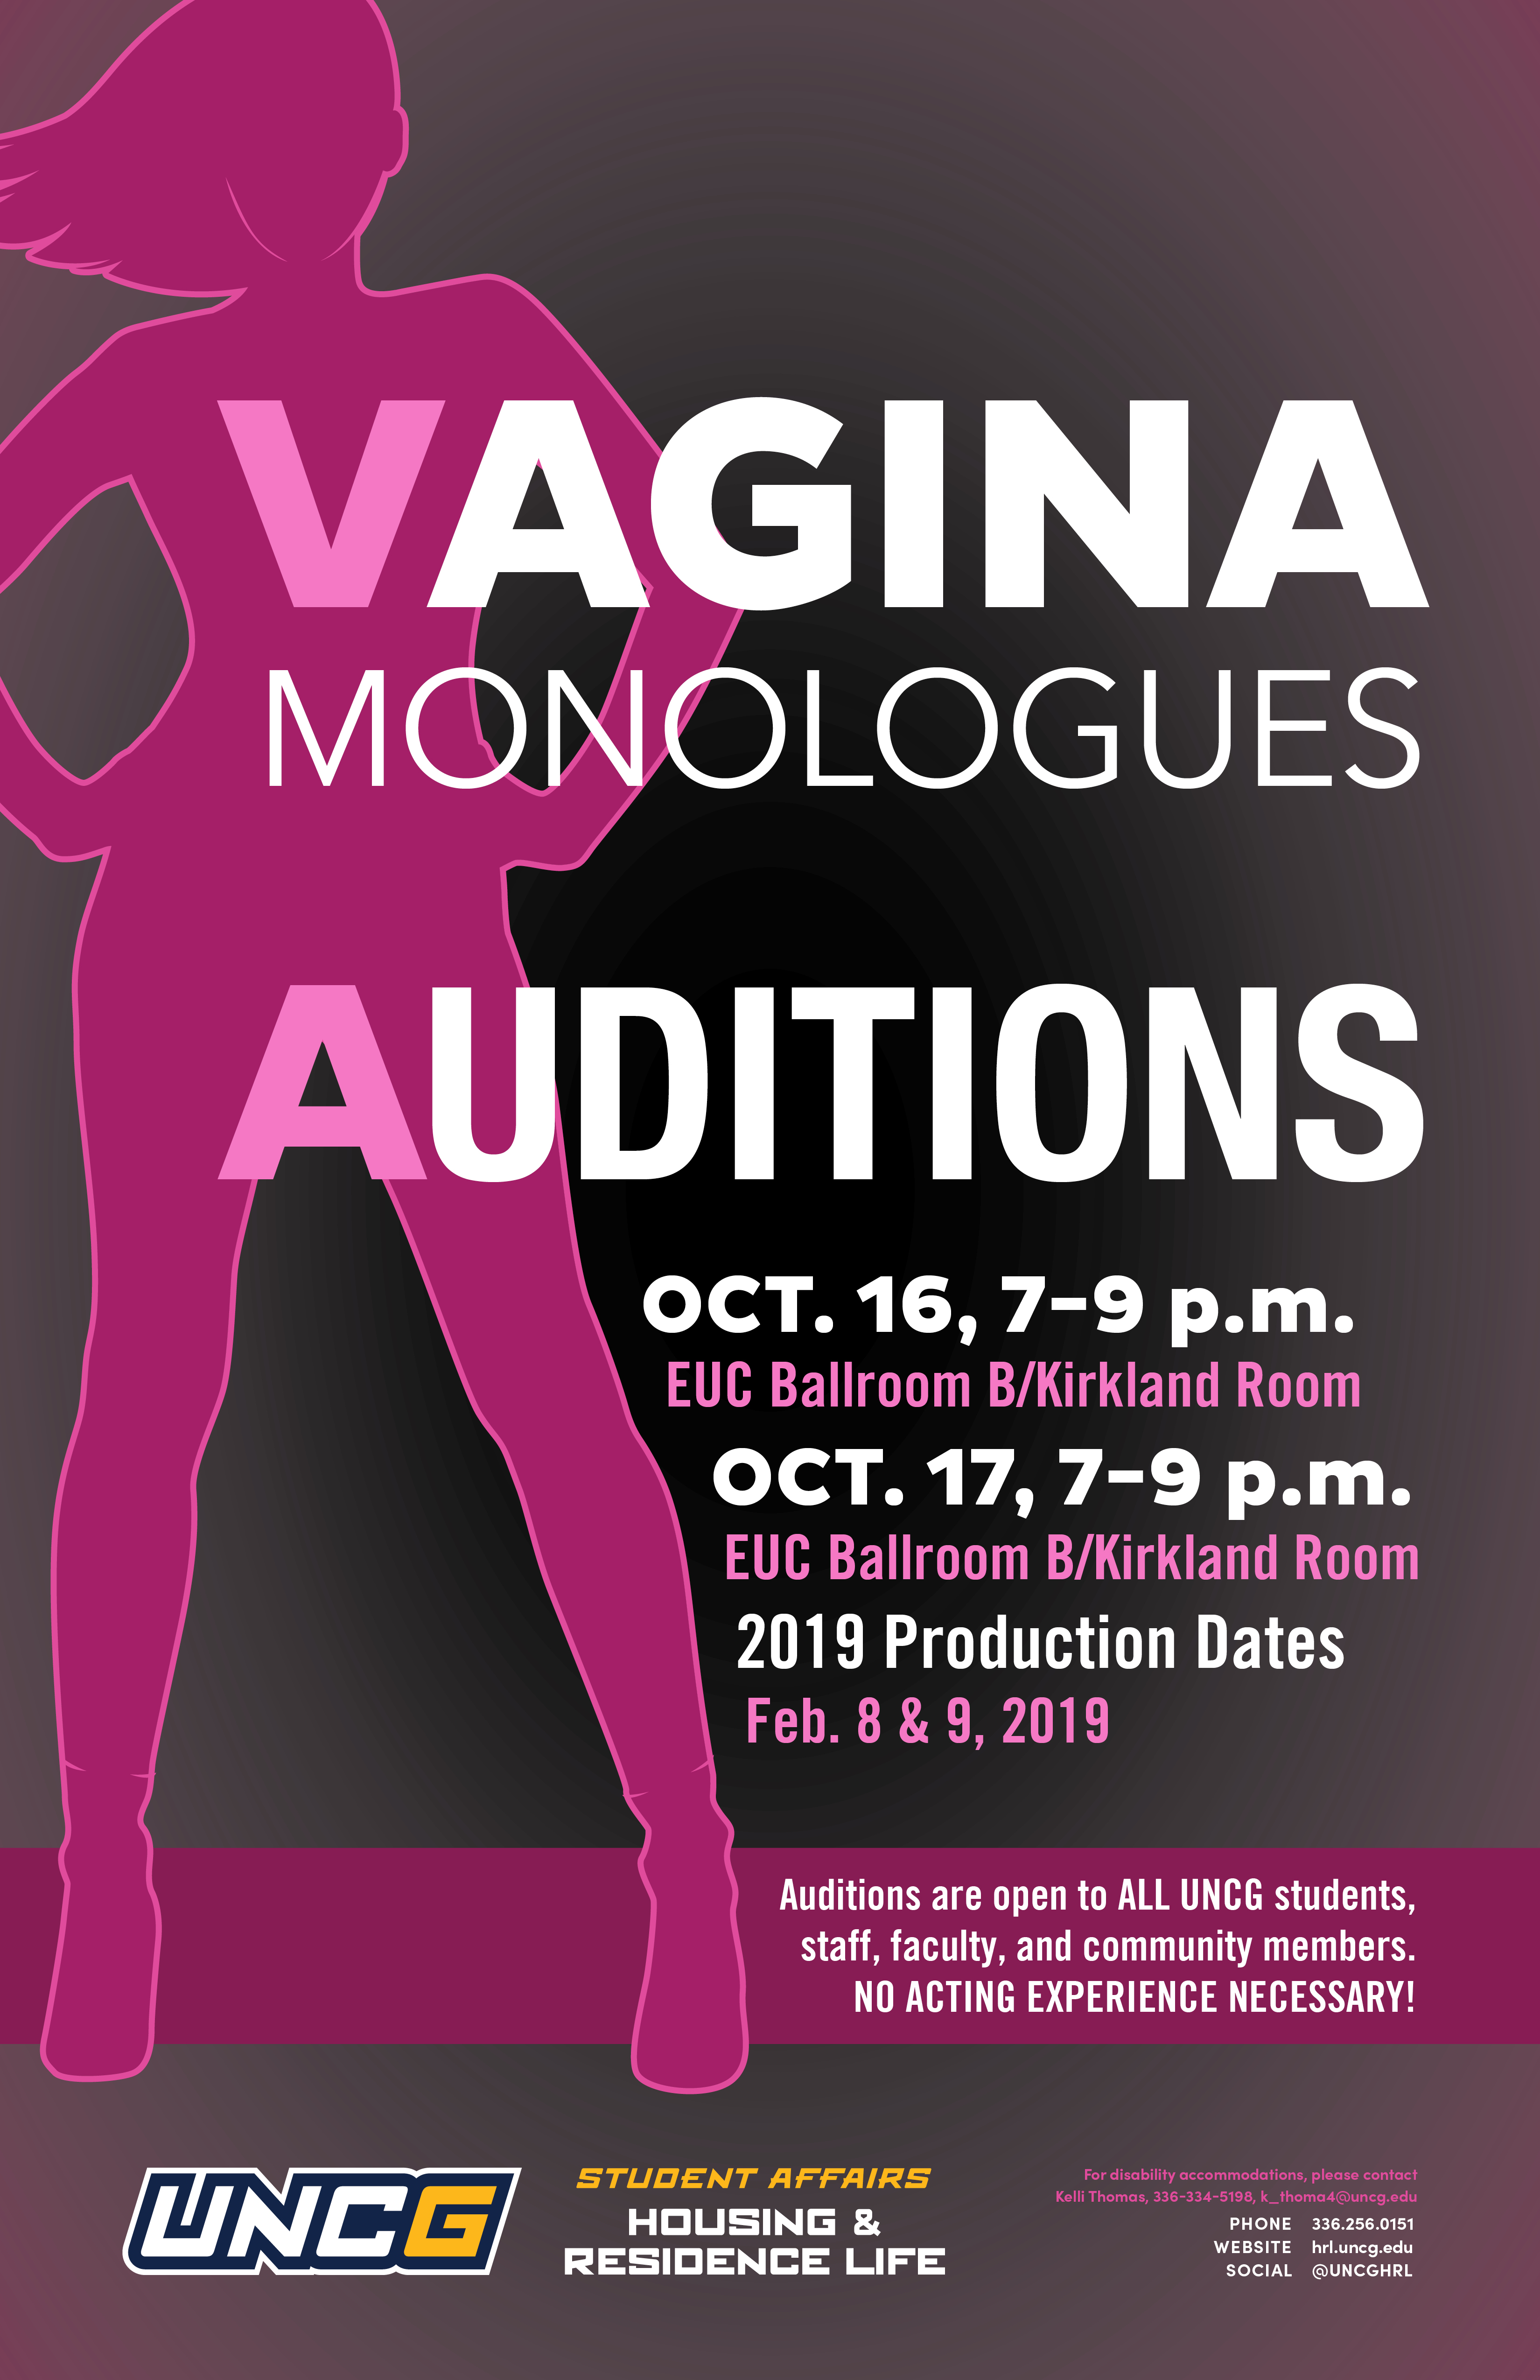 Vagina Monologue Auditions